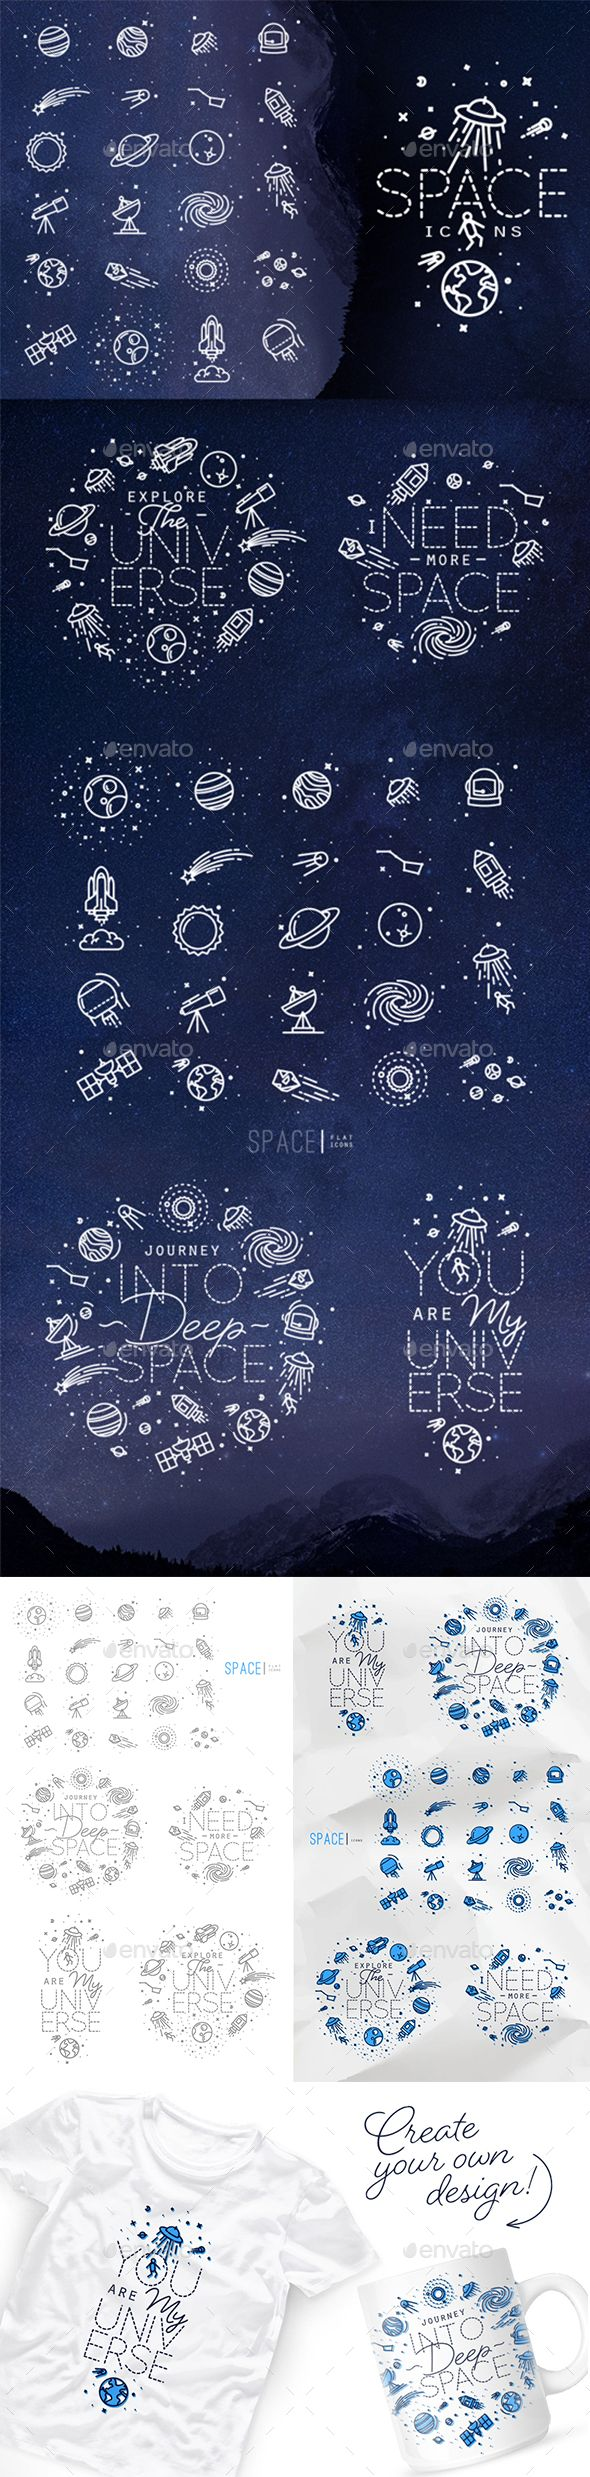 Space Icons — Photoshop PSD #vector #spaceship • Download ➝ https://graphicriver.net/item/space-icons/19975848?ref=pxcr